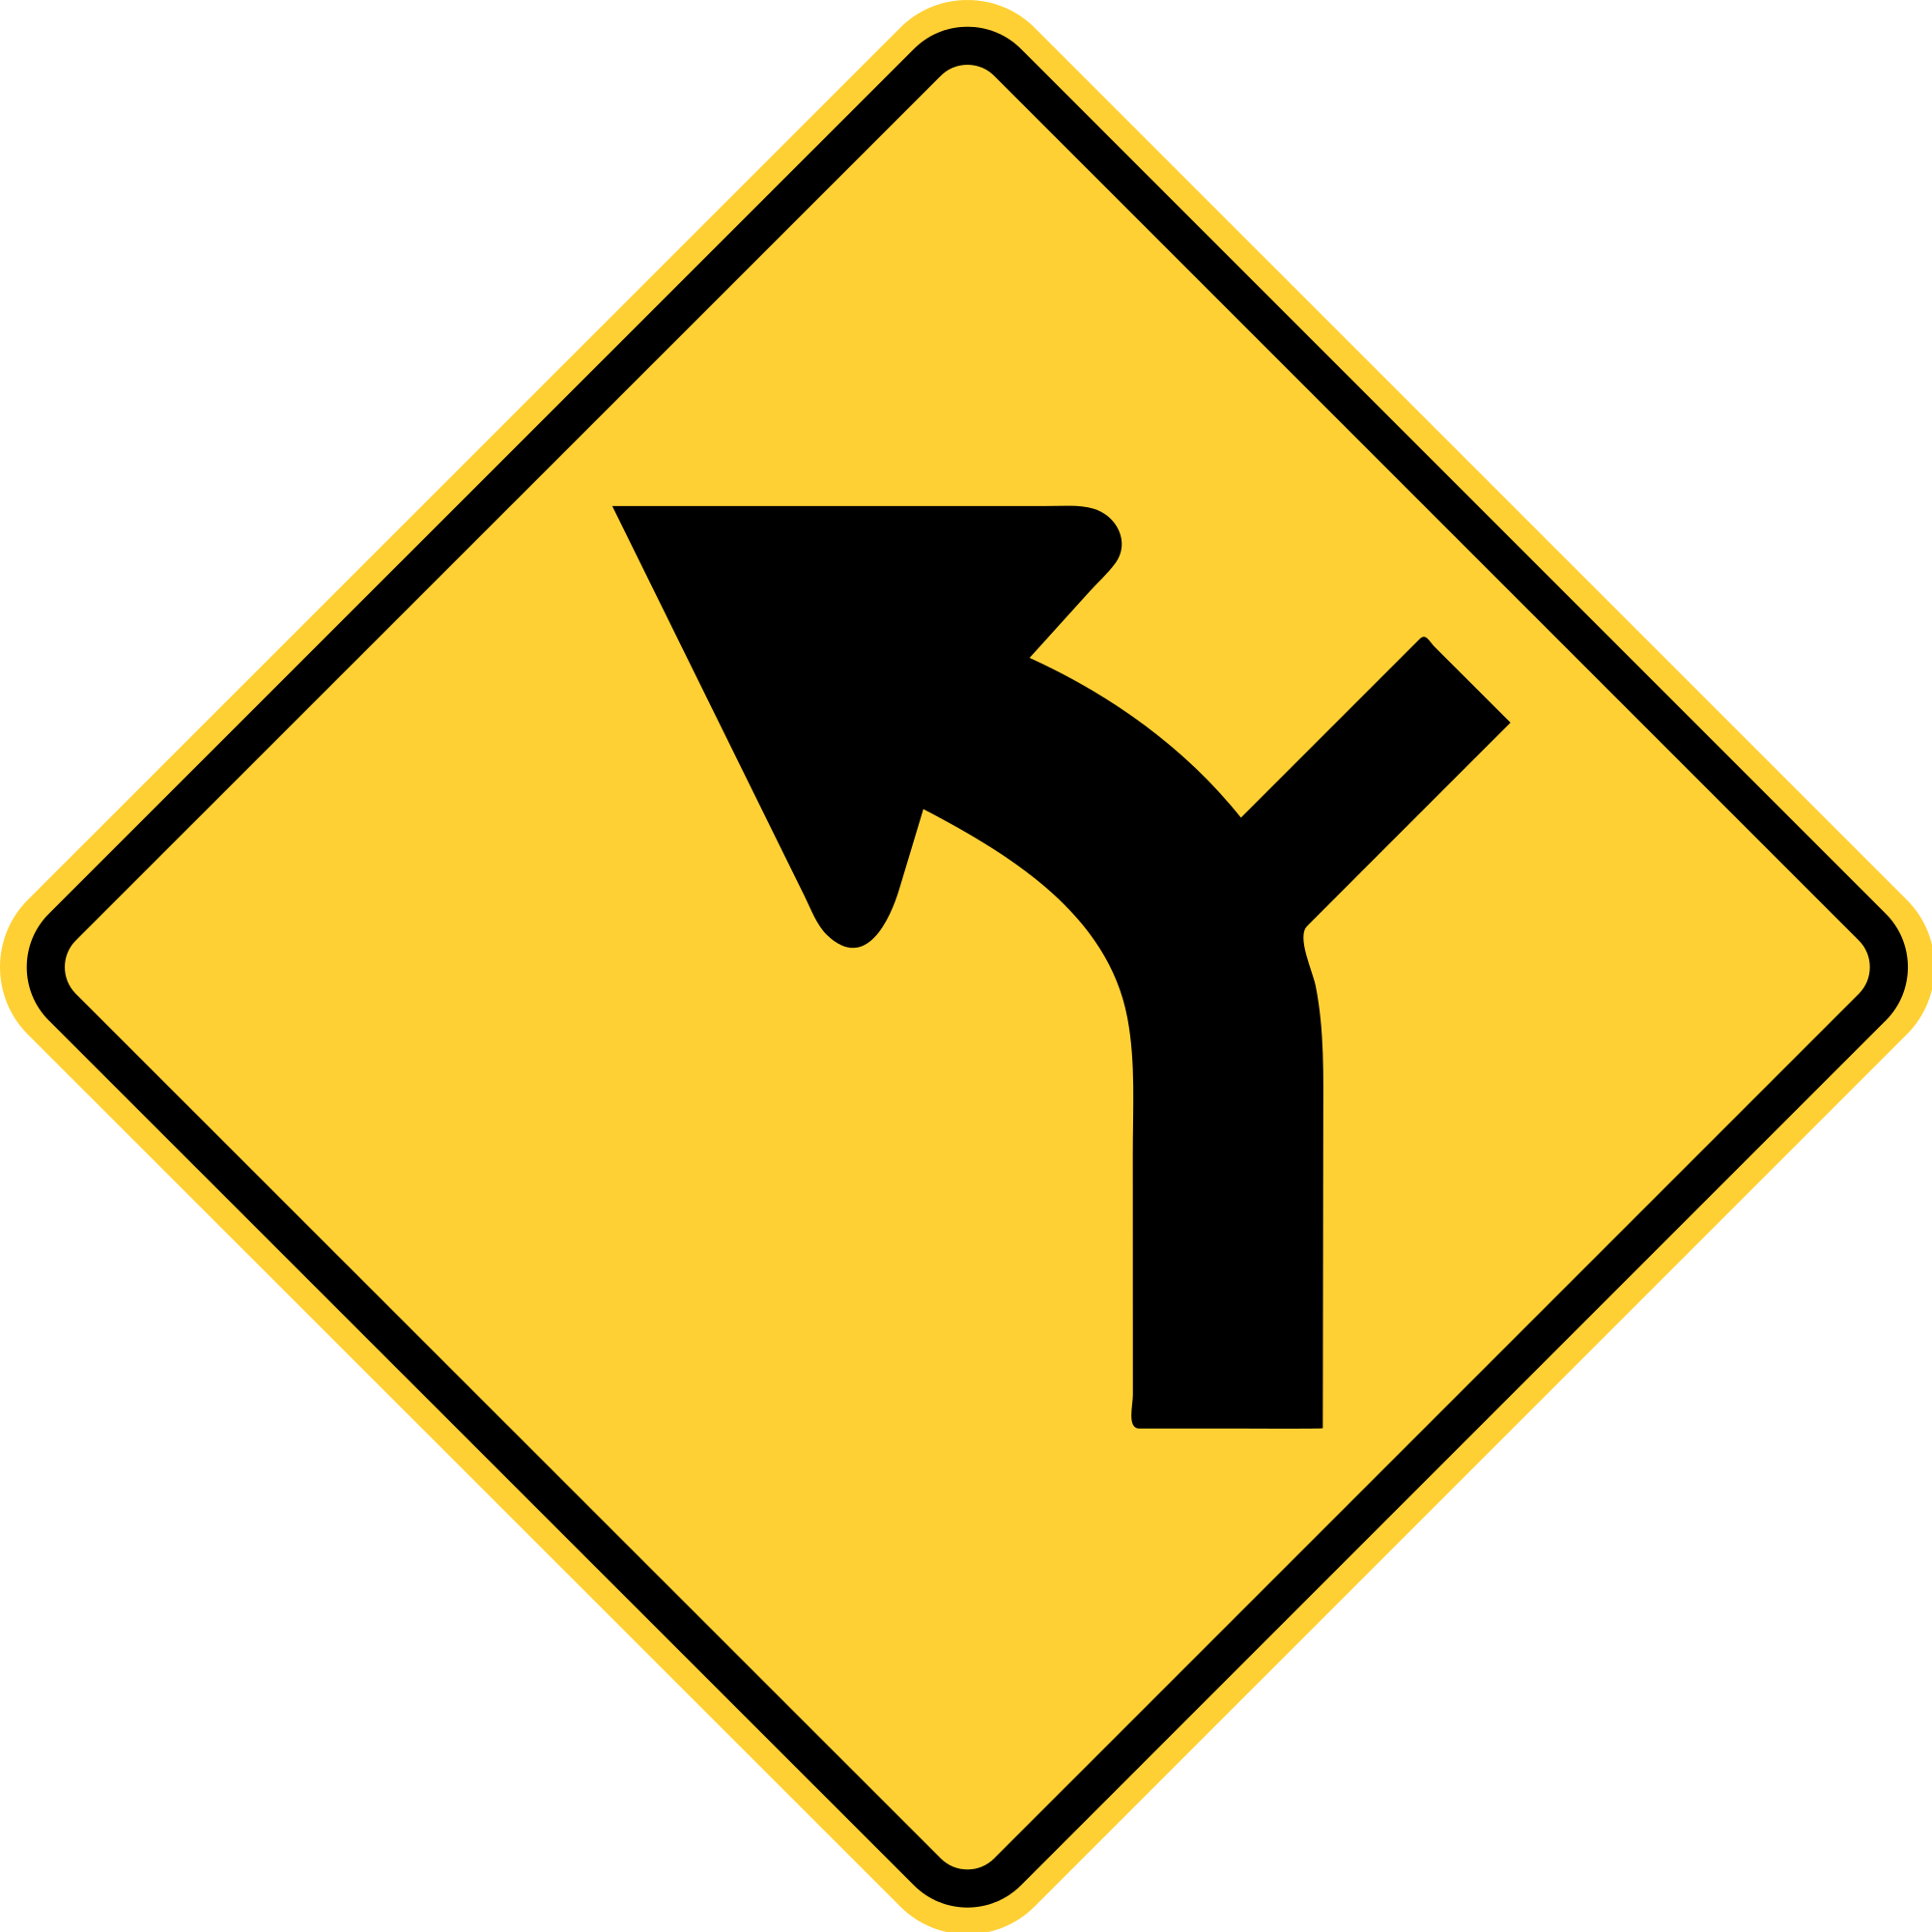 W1-10L Warning Sign